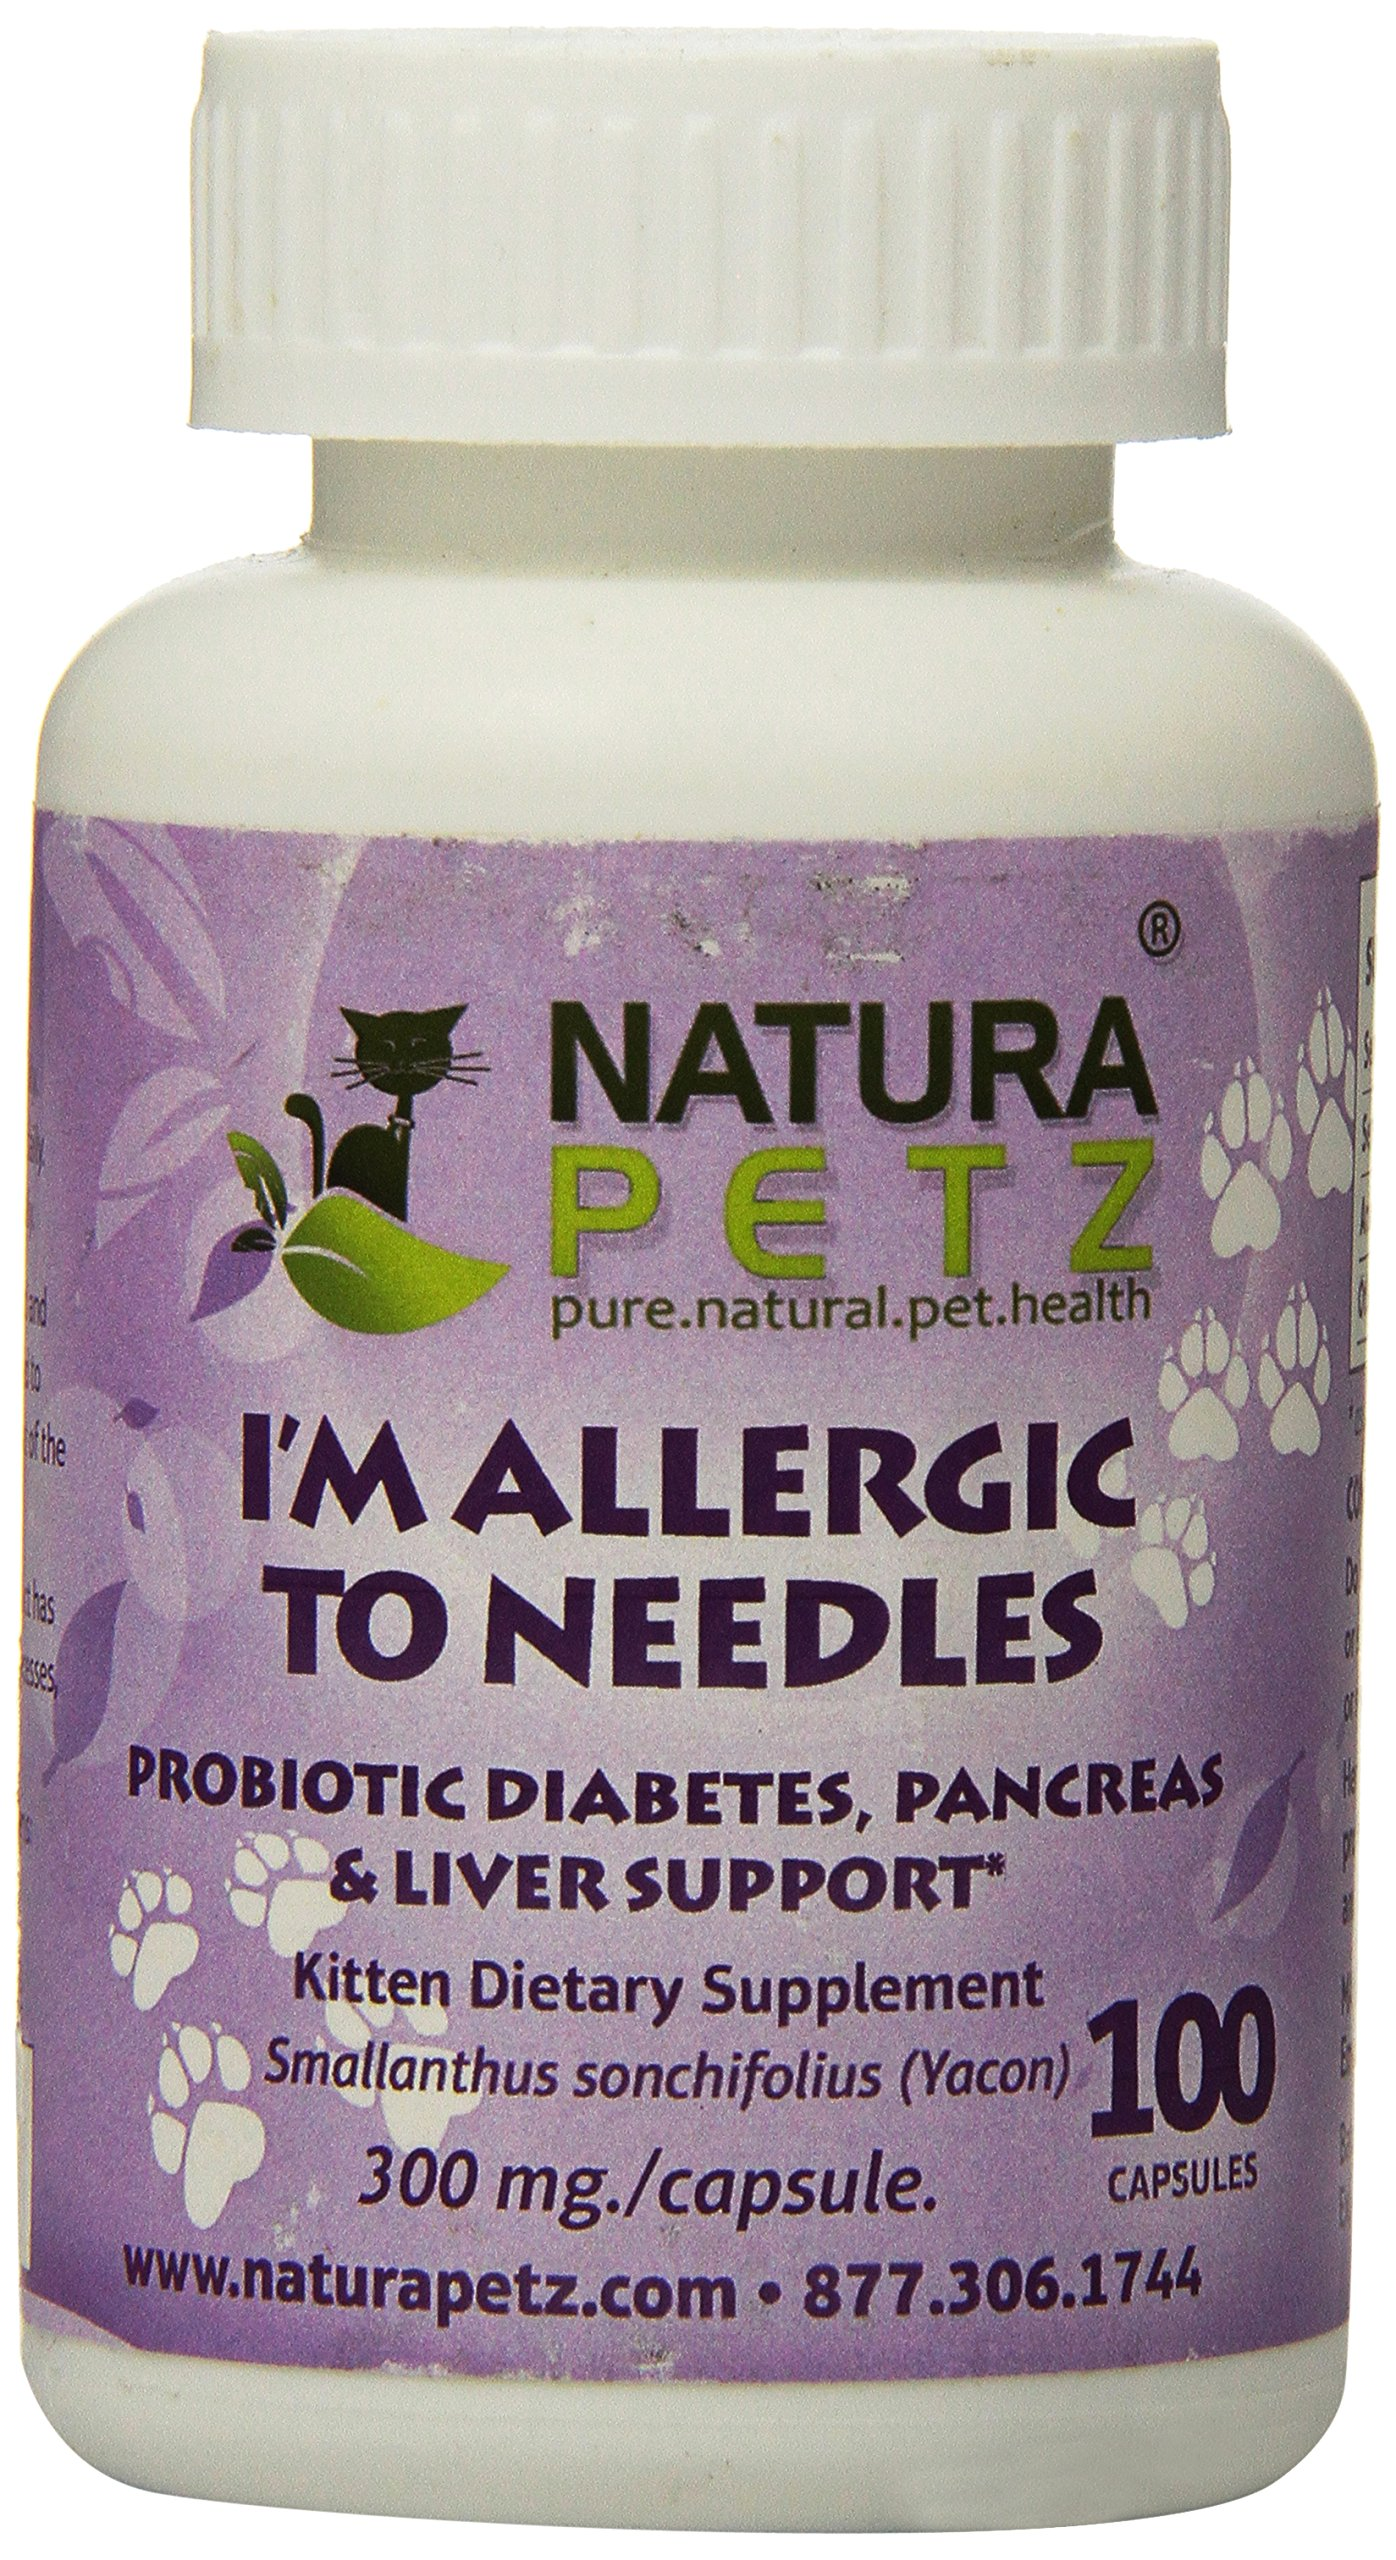 Natura Petz I'm Allergic to Needles Probiotic Diabetes, Pancreas, Liver and Insulin Resistance Support for Kittens, 100 Capsules, 300mg Per Capsule by Natura Petz